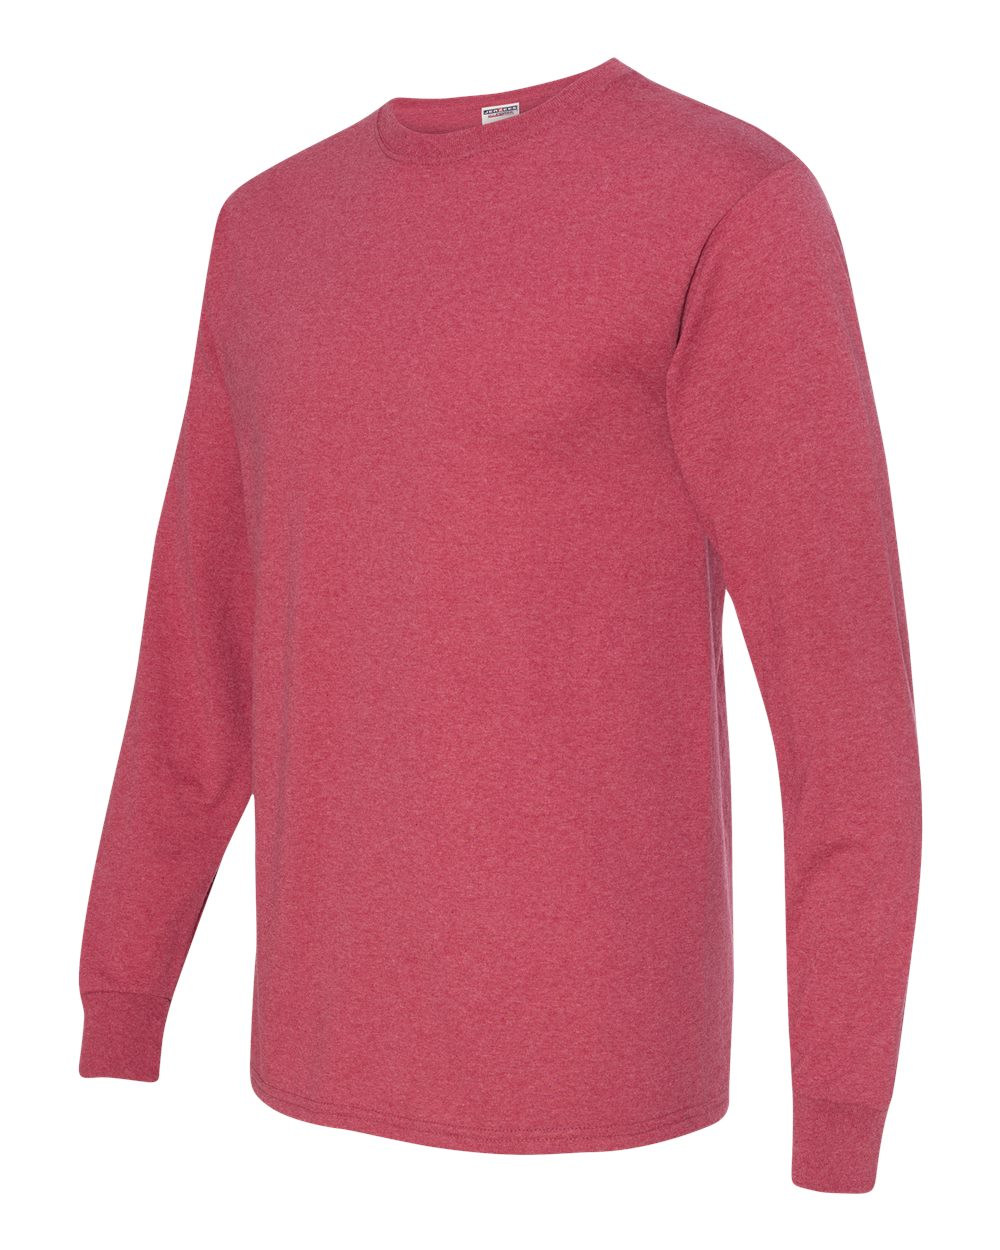 Jerzees 5.6 oz. ATHLETIC HEATHER 50//50 Heavyweight Blend Long-Sleeve T-Shirt 29L